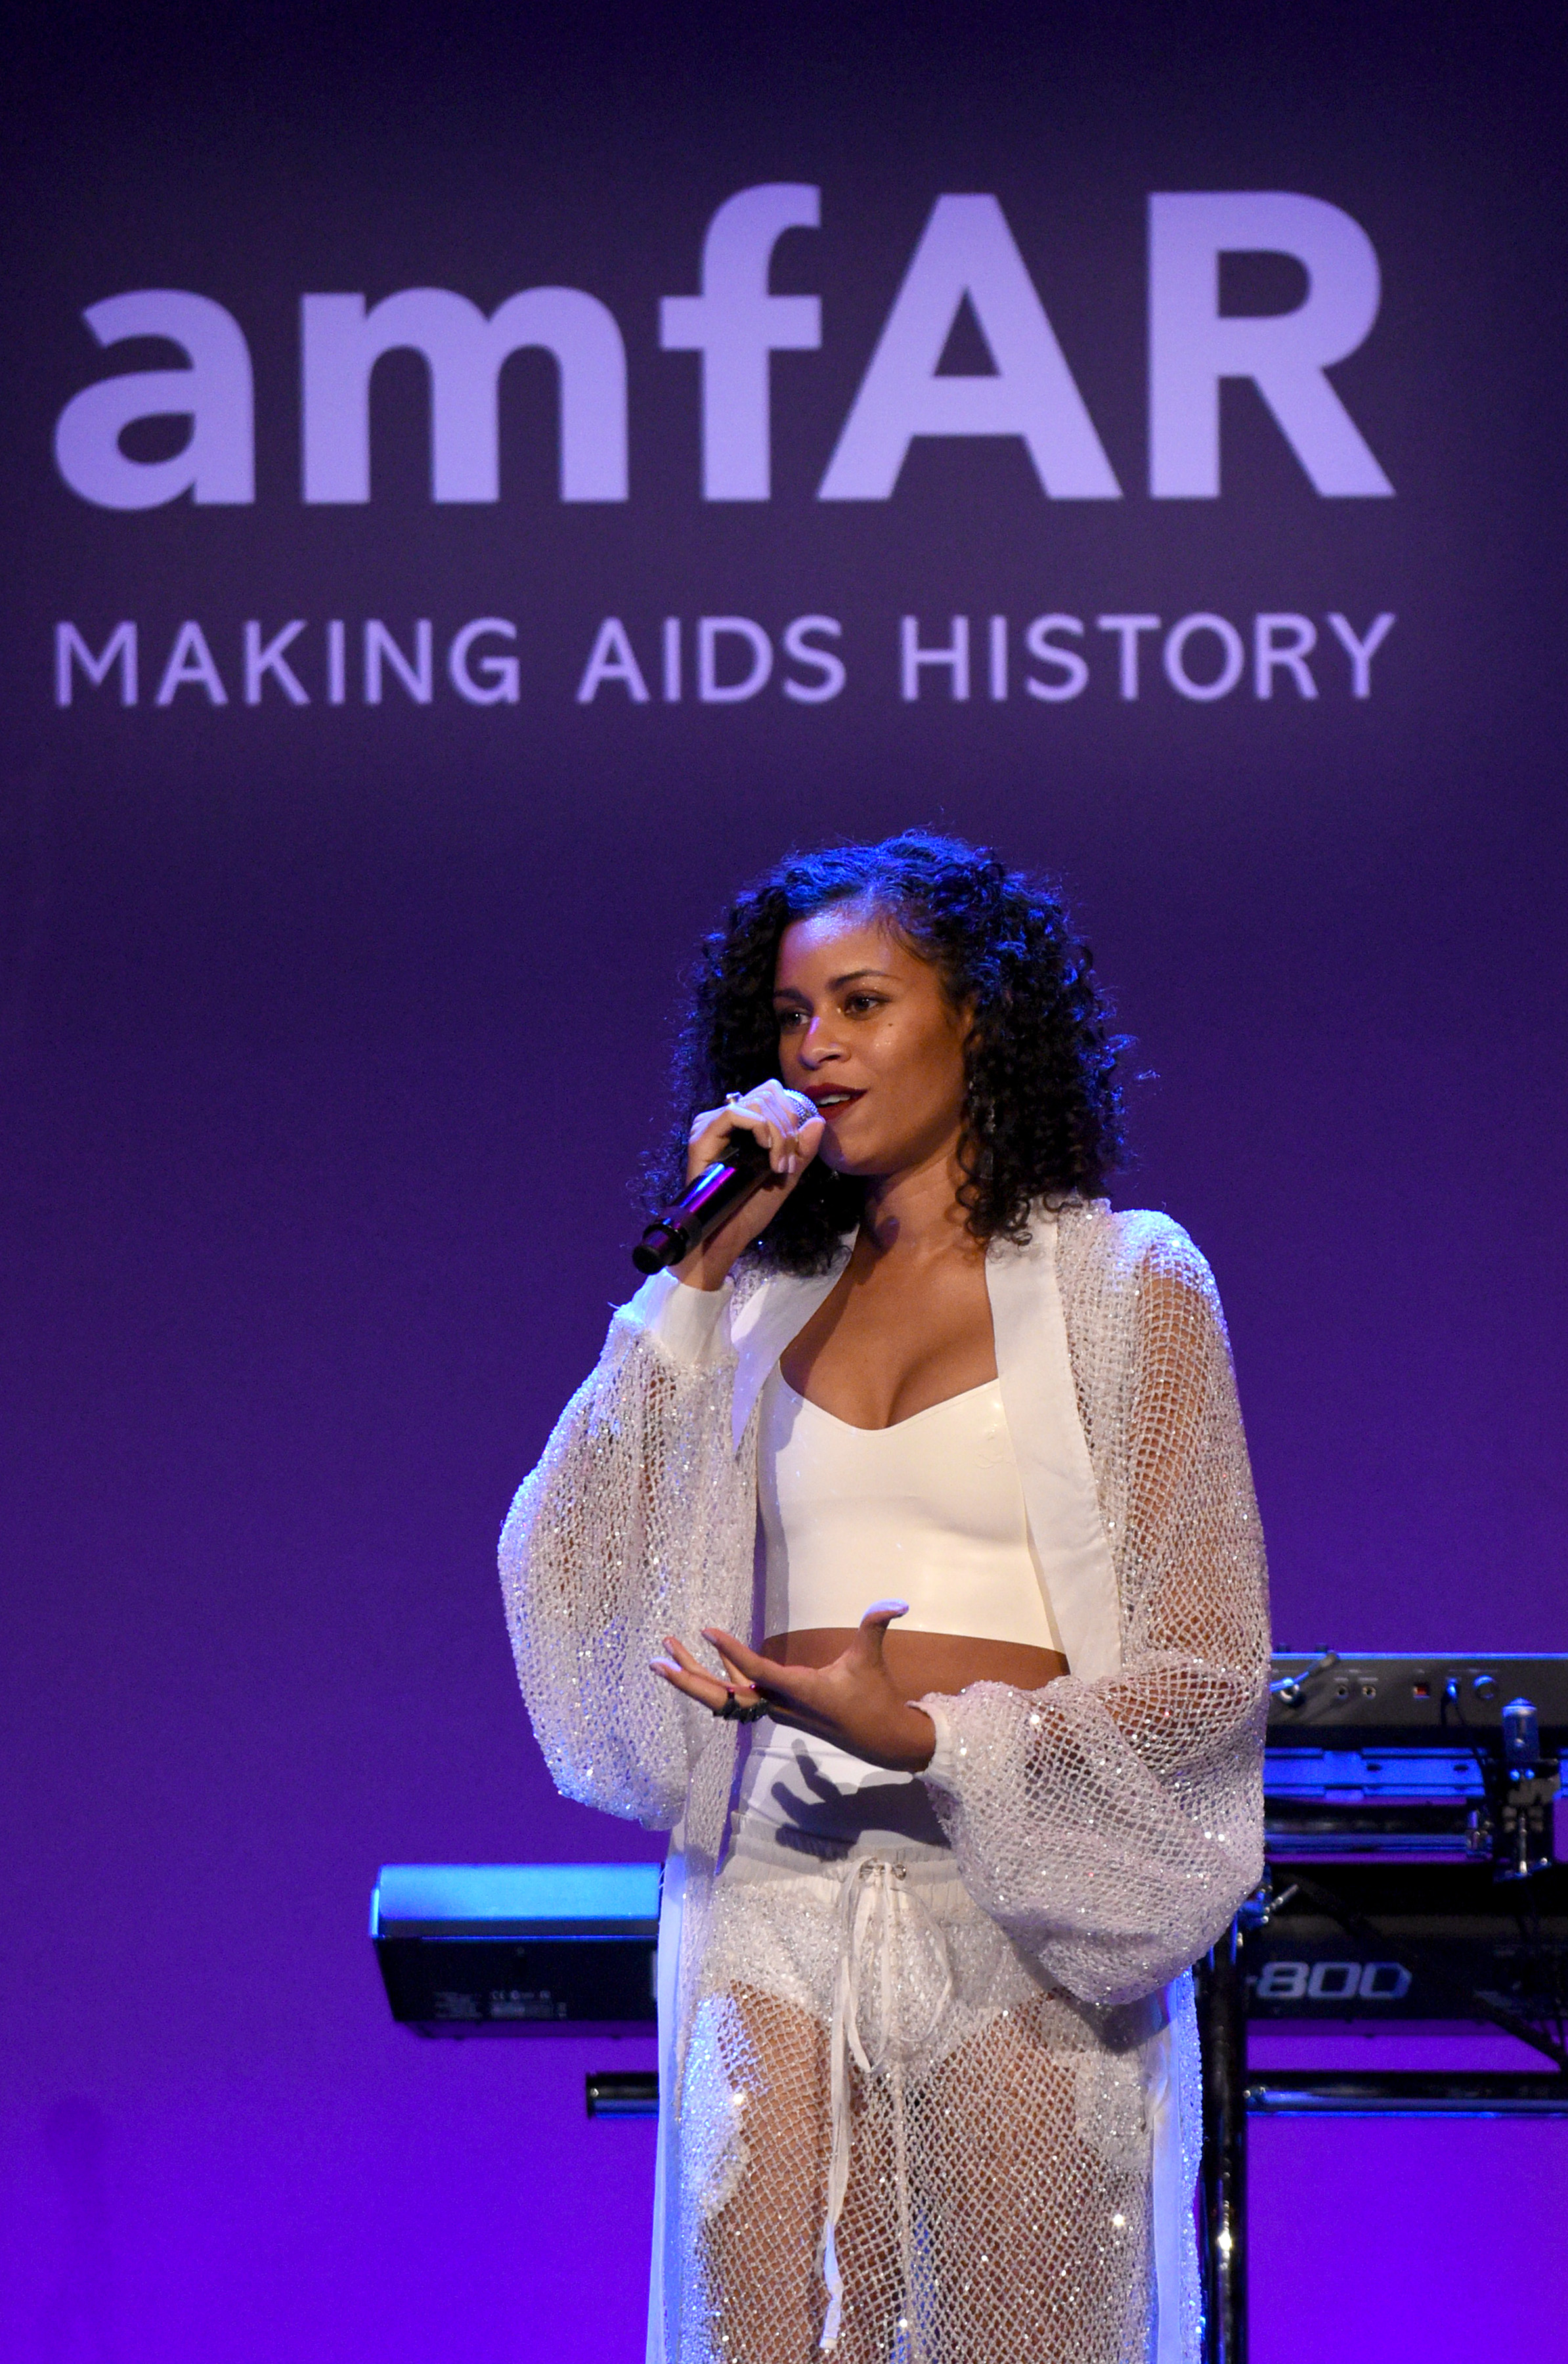 NEW YORK, NY - FEBRUARY 08:  Musician AlunaGeorge performs onstage as Moet & Chandon Toasts to the amfAR New York Gala At Cipriani Wall Street at Cipriani Wall Street on February 8, 2017 in New York City.  (Photo by Bryan Bedder/Getty Images for Moet & Chandon)